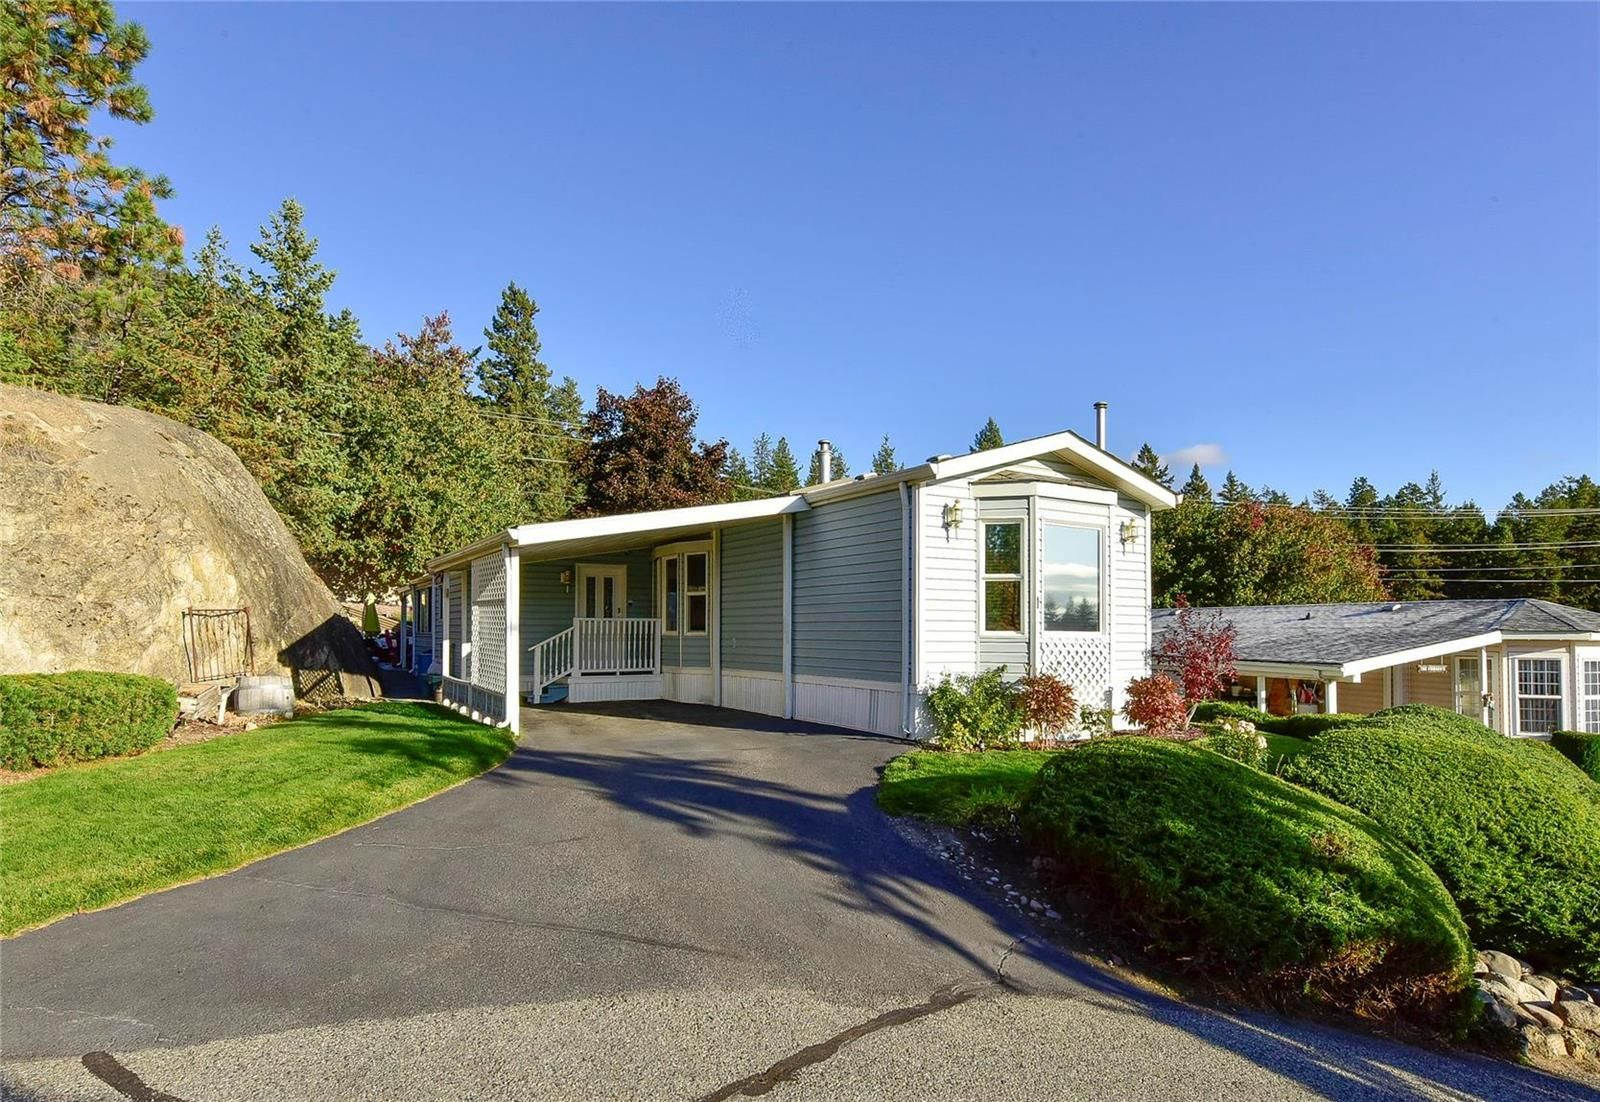 Main Photo: #1 1850 Shannon Lake Road, in West Kelowna: House for sale : MLS®# 10241623